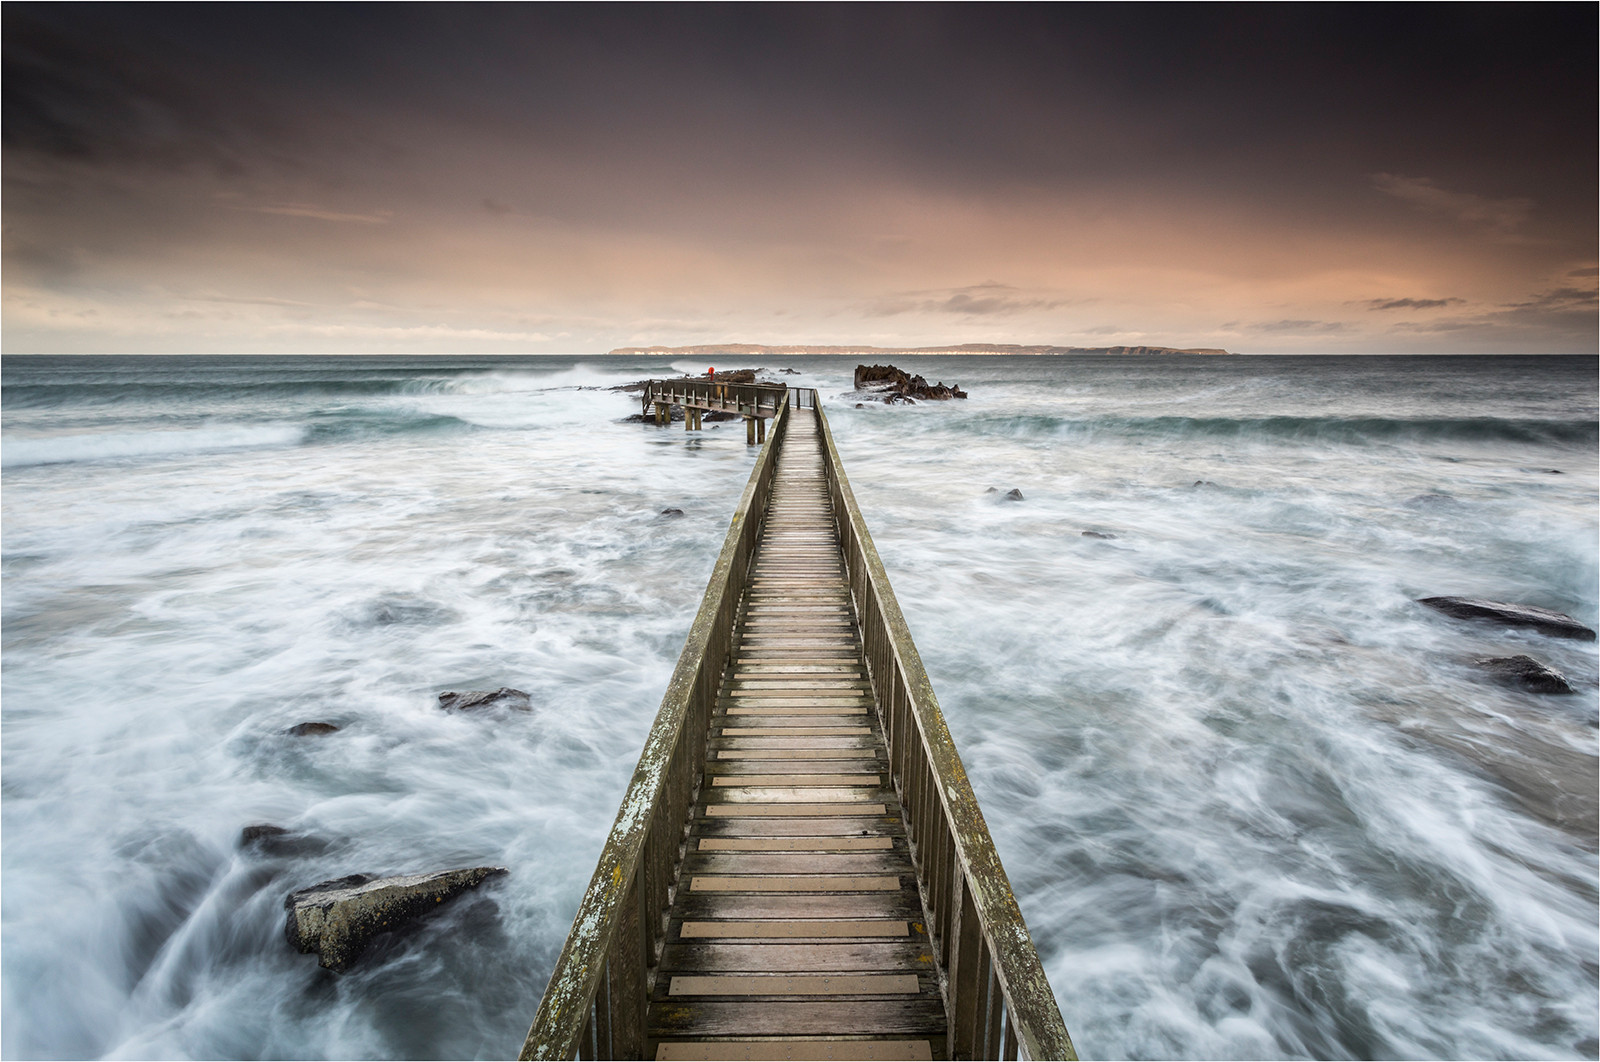 PDI - Waves Of Winter by PAUL KILLEEN (12 marks)